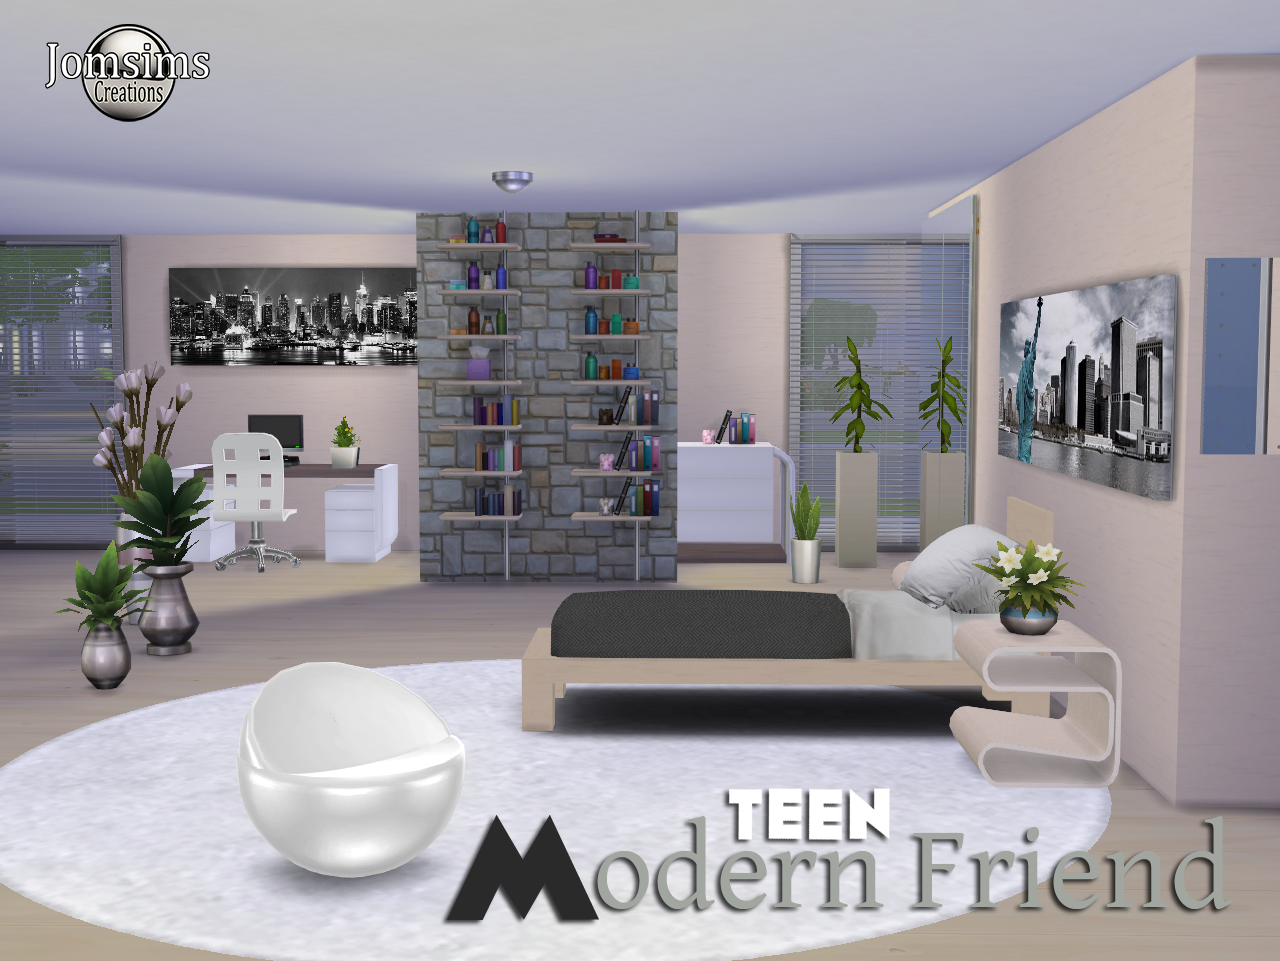 Jomsimscreations blog: hello friends a new bedroom sims 4 teen ...